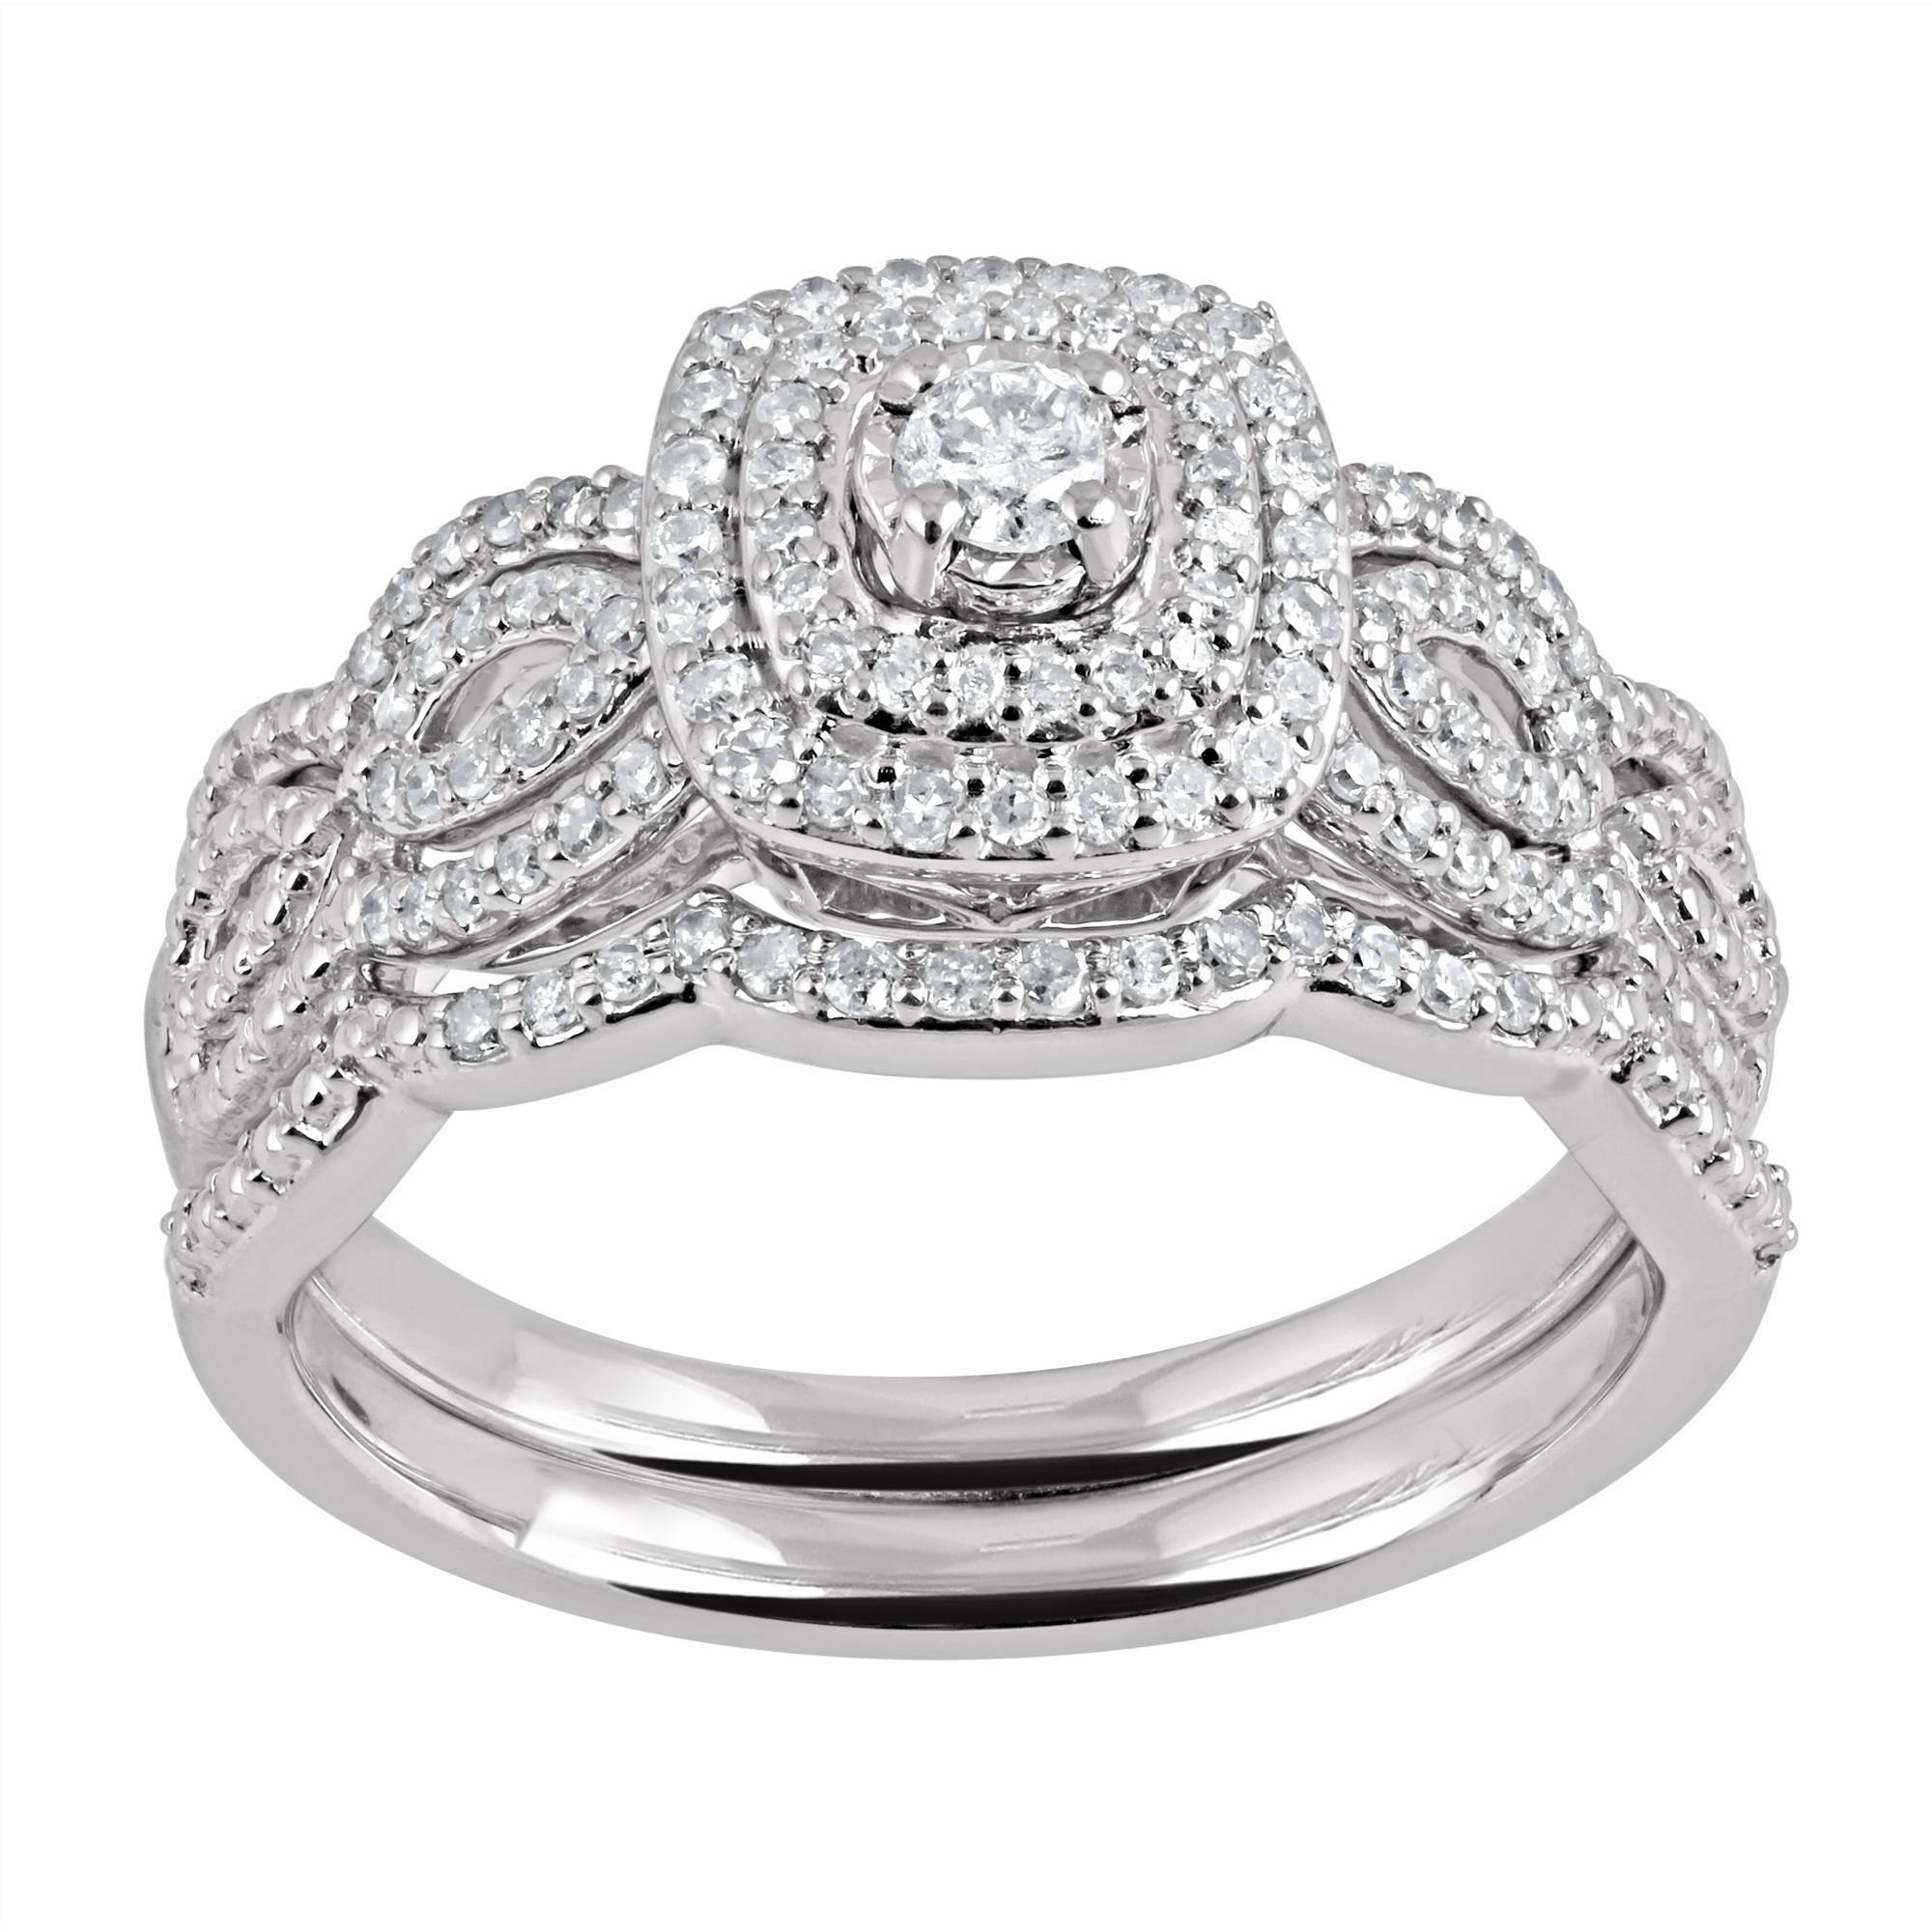 Walmart Wedding Rings | Wedding Ideas With Regard To Walmart White Gold Wedding Bands (View 12 of 15)